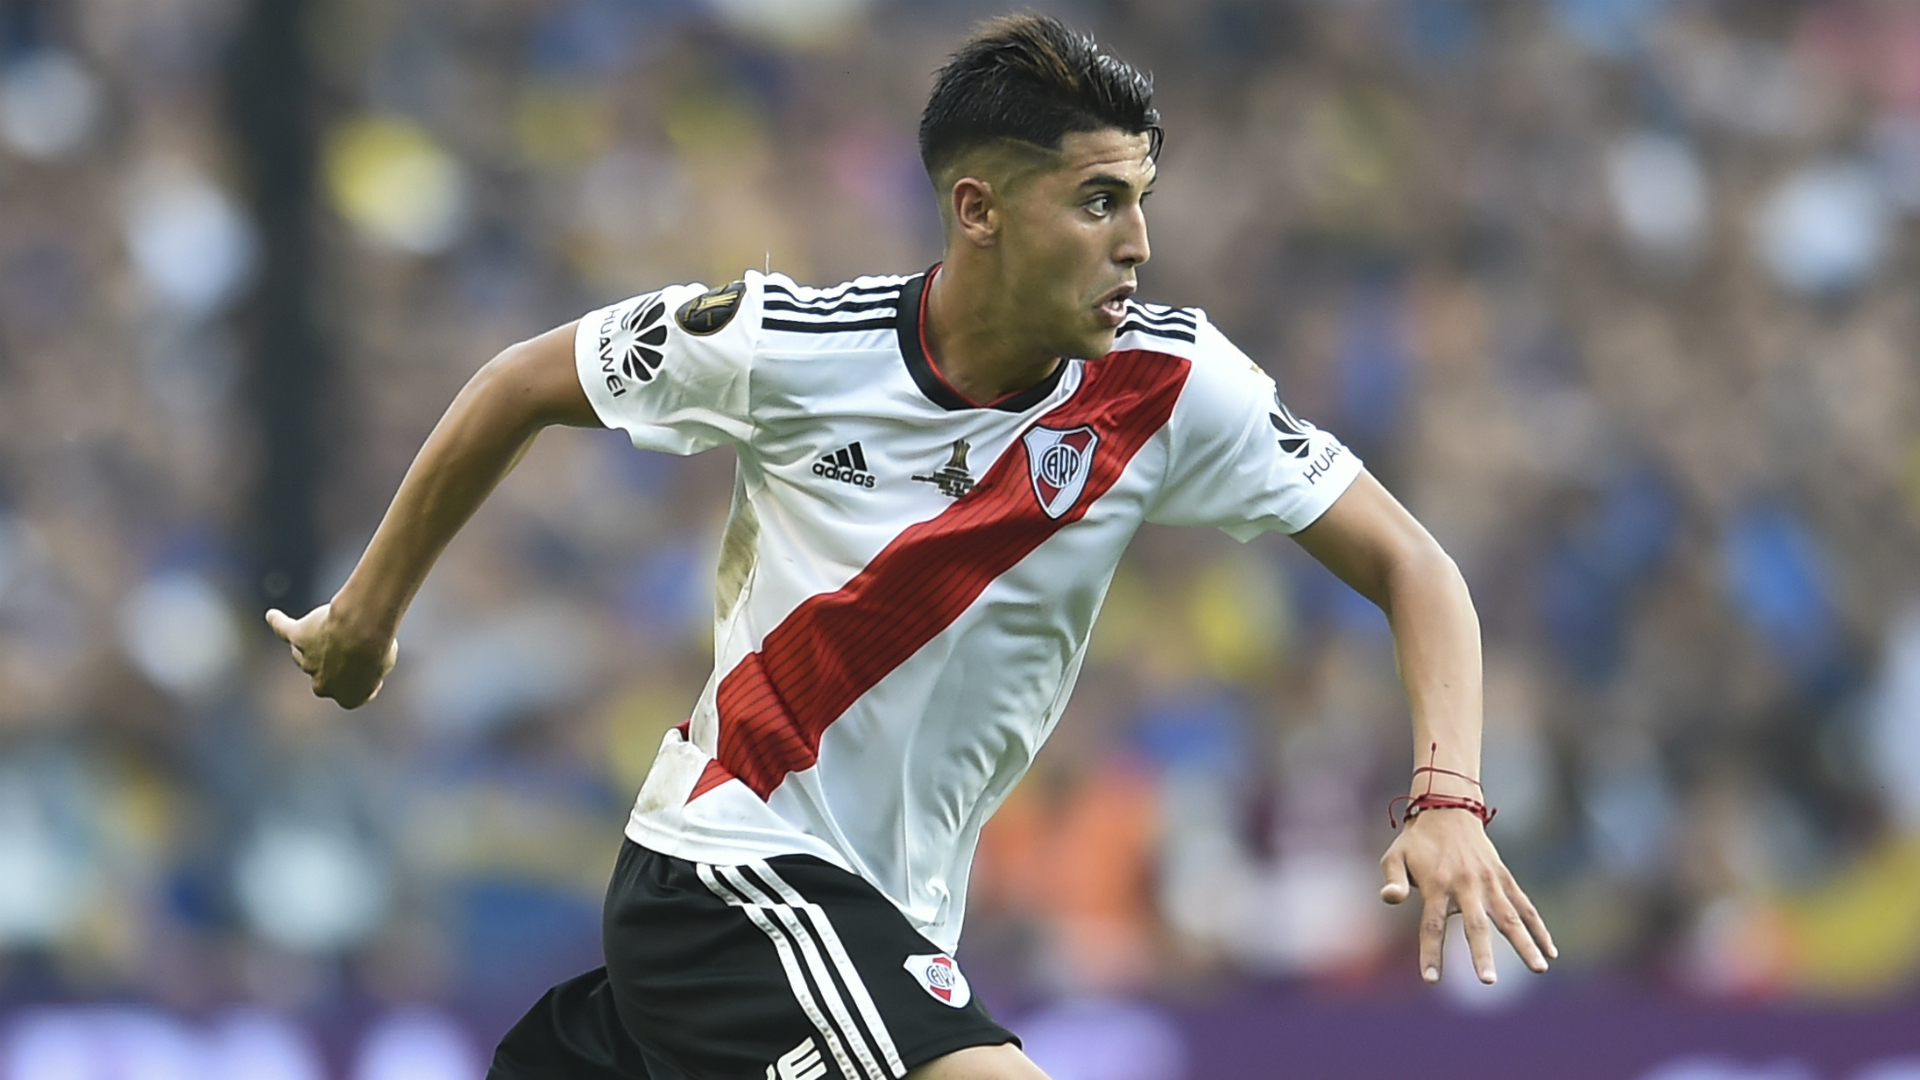 Madrid want Palacios – River president D'Onofrio